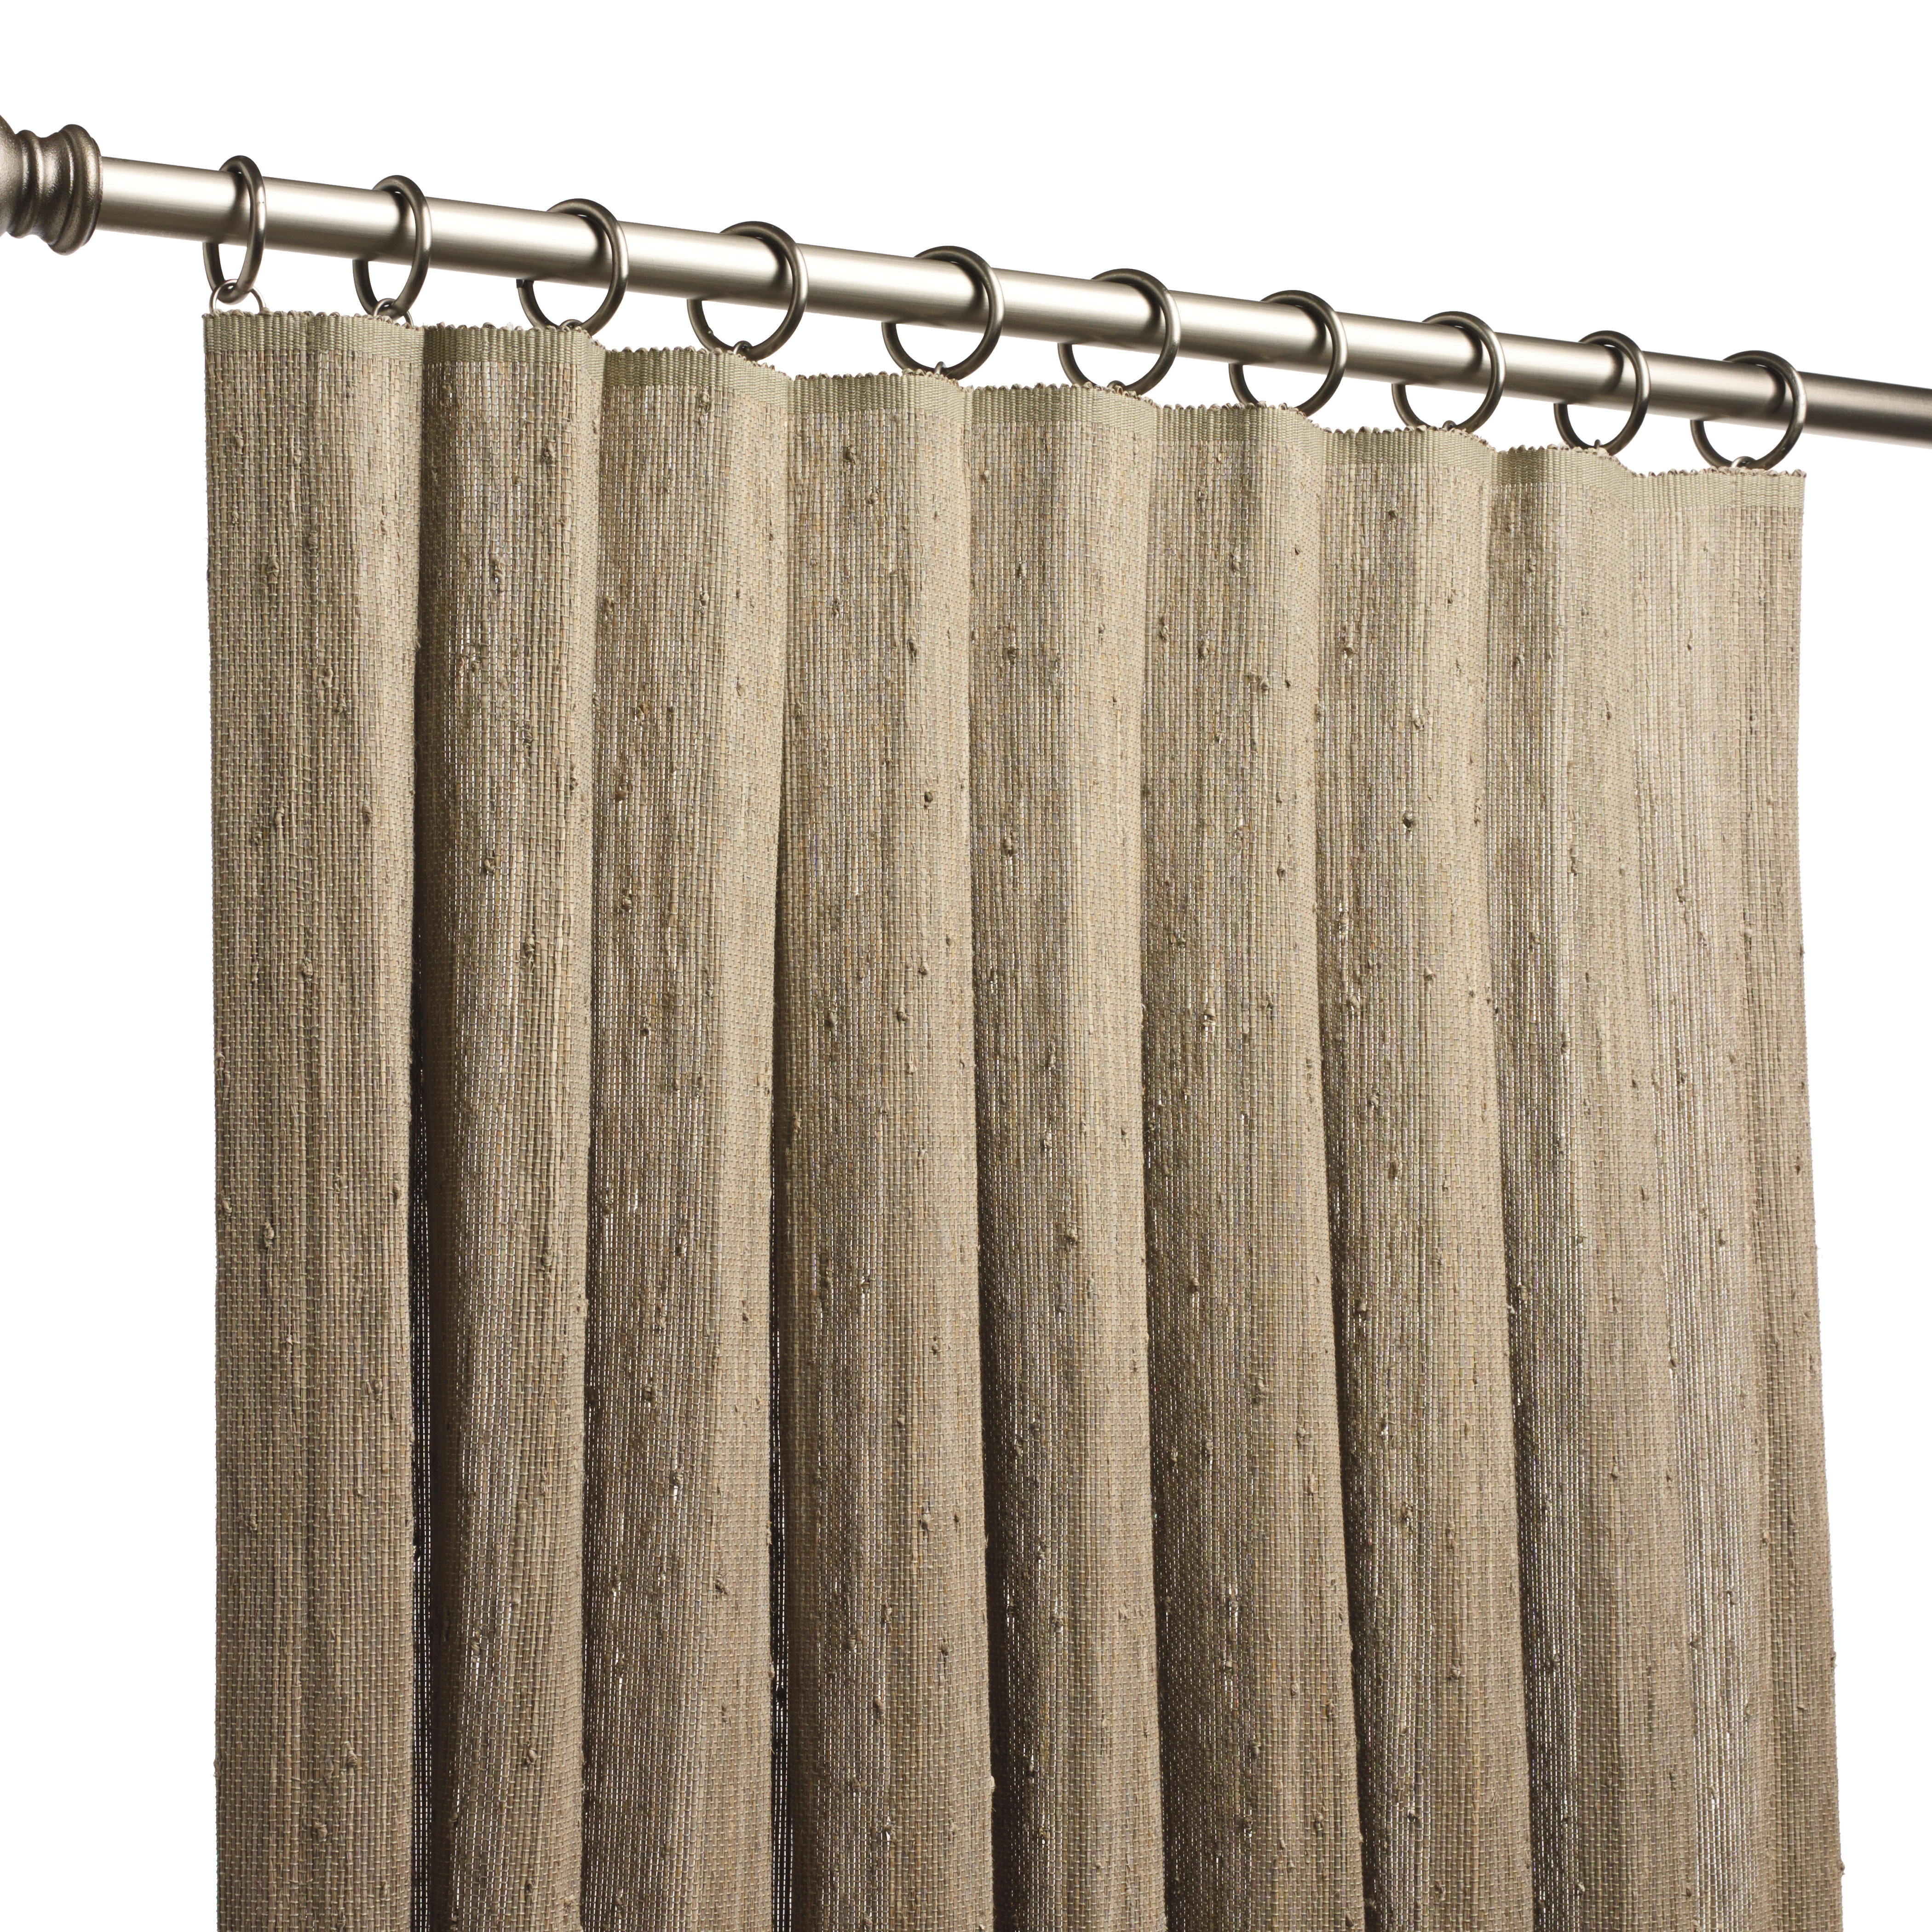 Natural woven drapery hartmannforbes for Roller pleat curtains